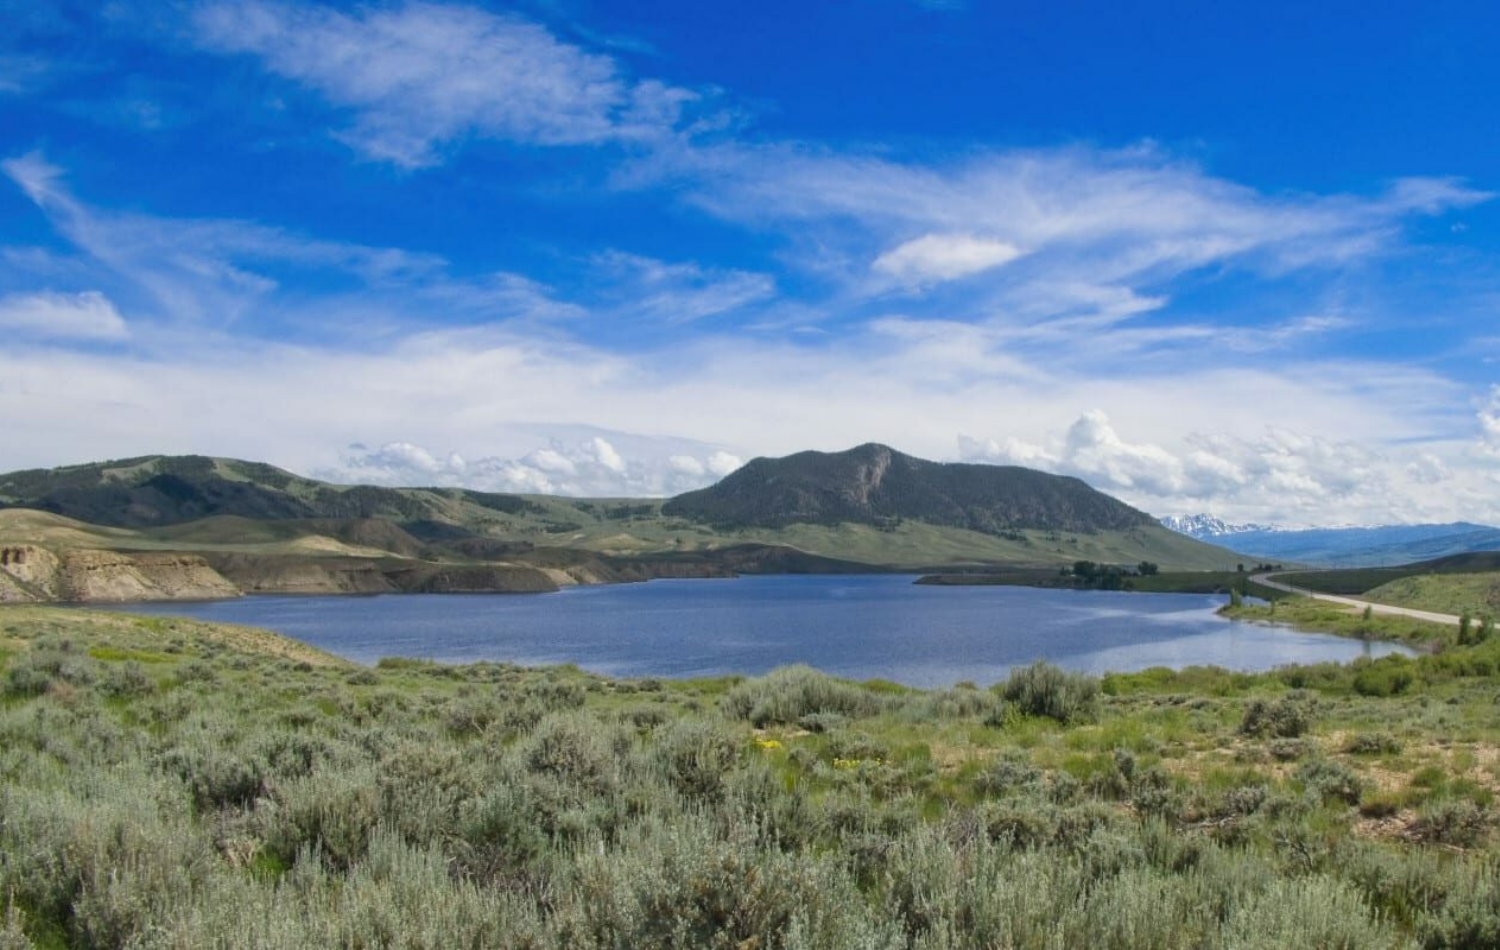 Wolford Mountain Reservoir in Kremmling, CO - Grand County